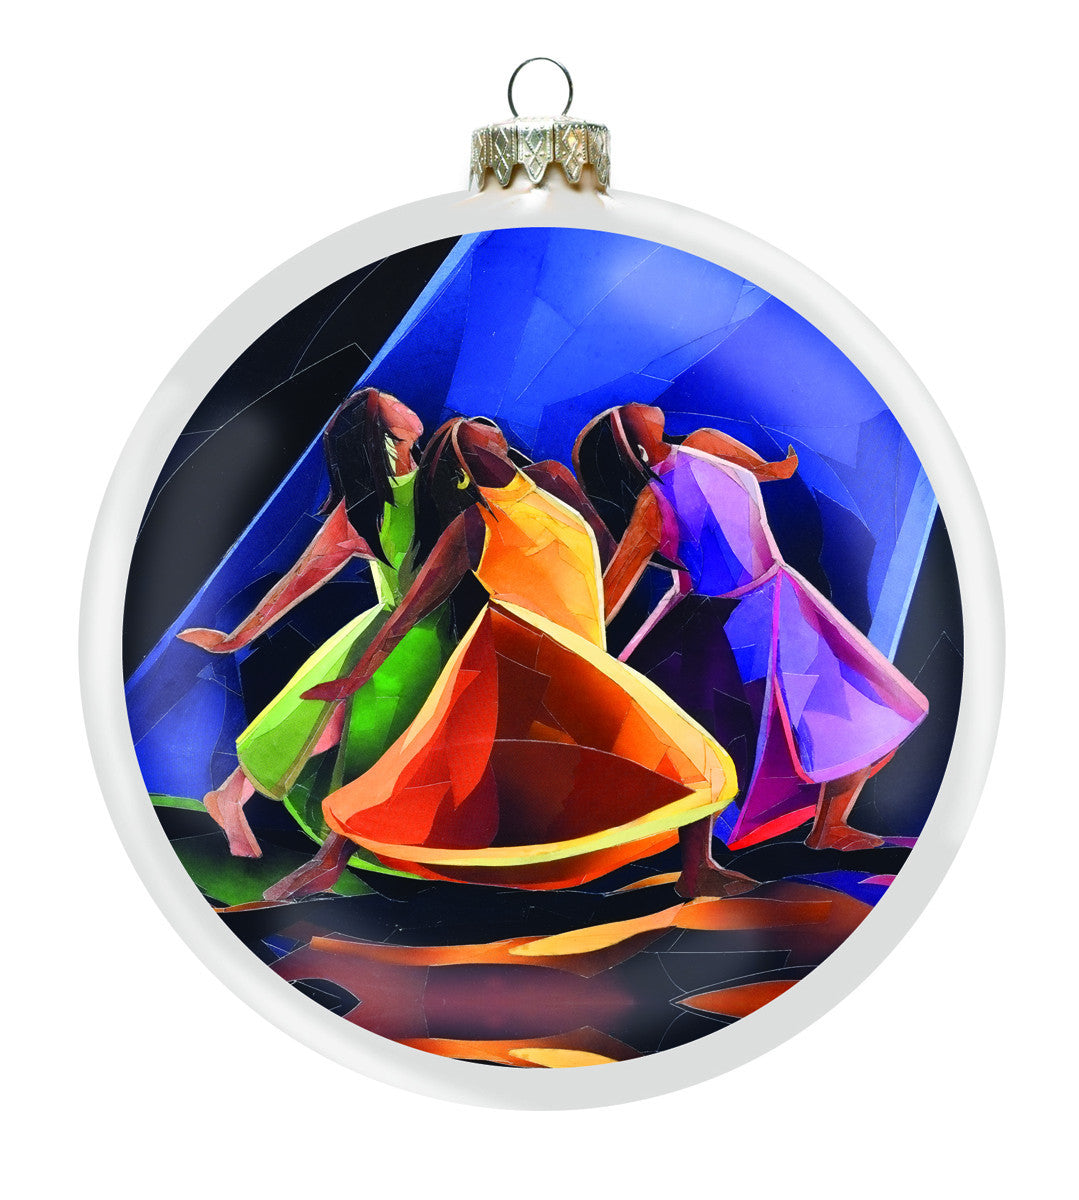 Praises Go Up: African-American Christmas Ornament by Carl M. Crawford (Front)